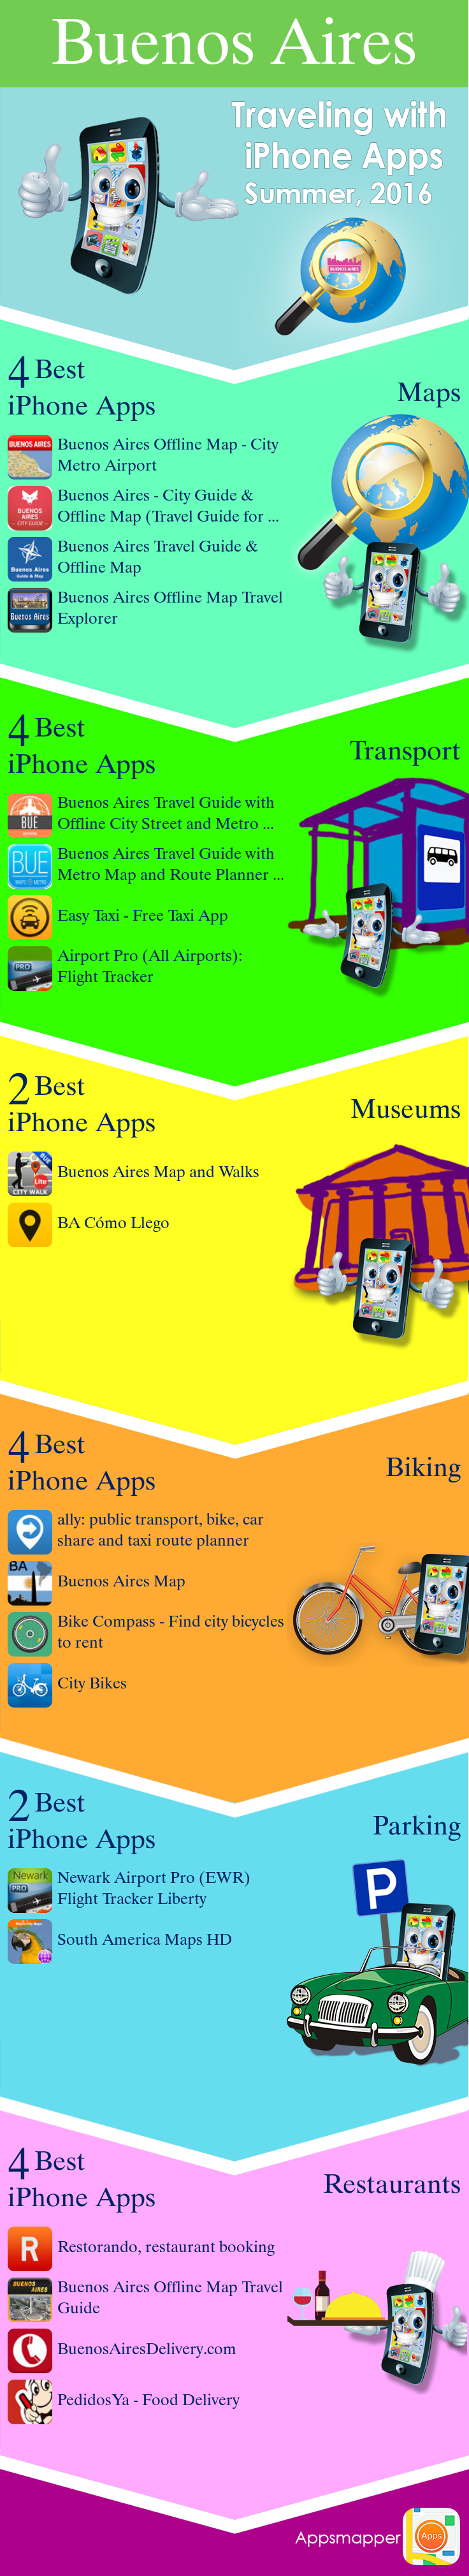 Buenos Aires iPhone apps: Travel Guides, Maps, Transportation, Biking, Museums, Parking, Sport and apps for Students.